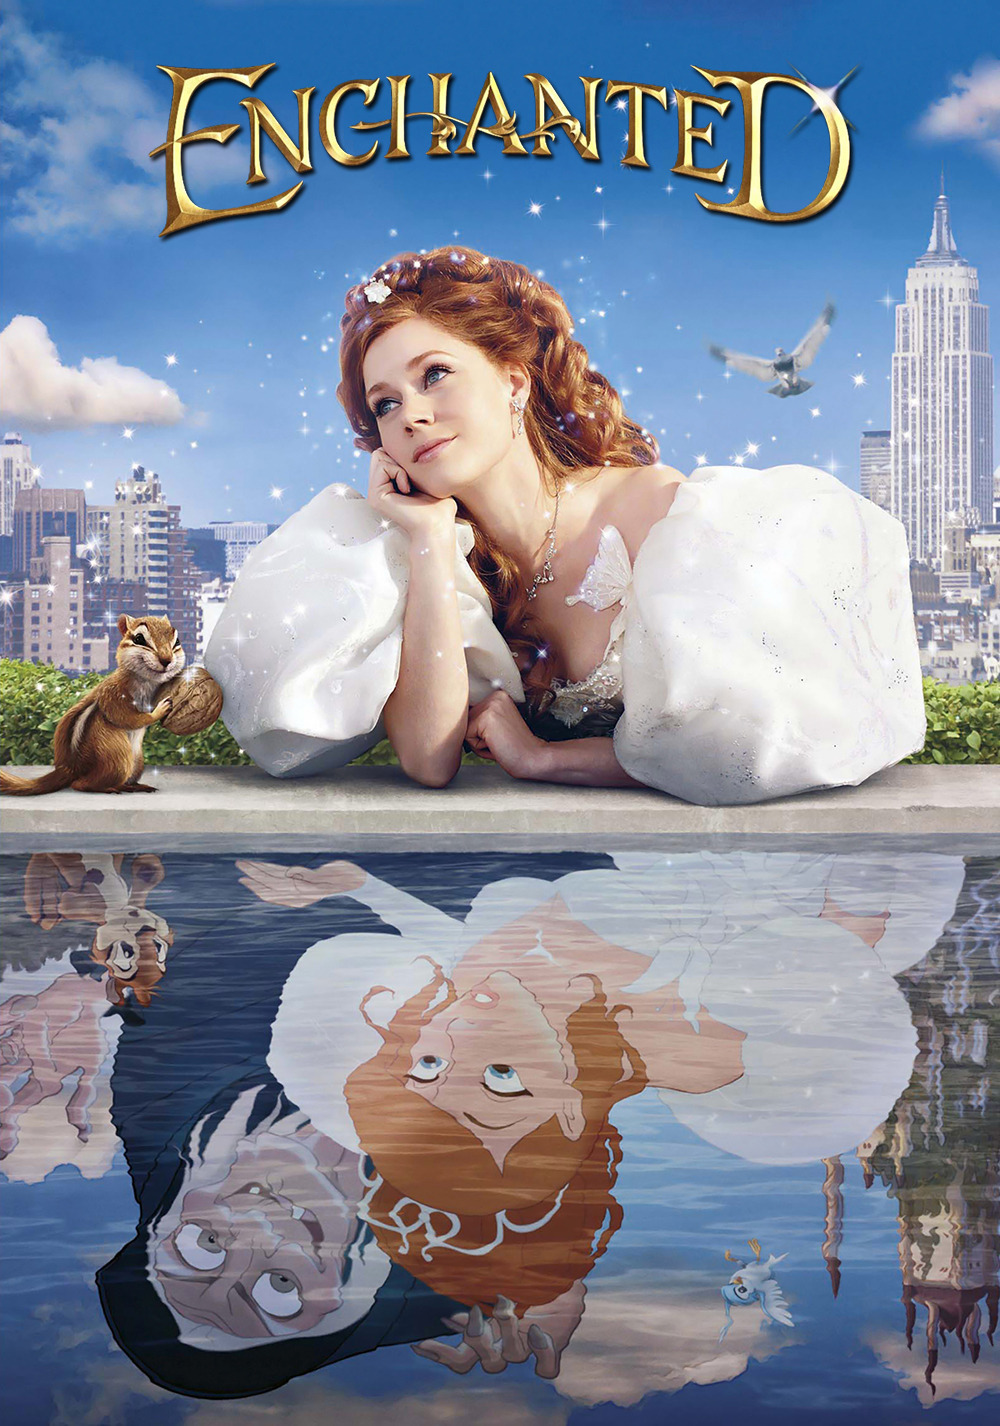 Enchanted - A Stereotypical Analysis